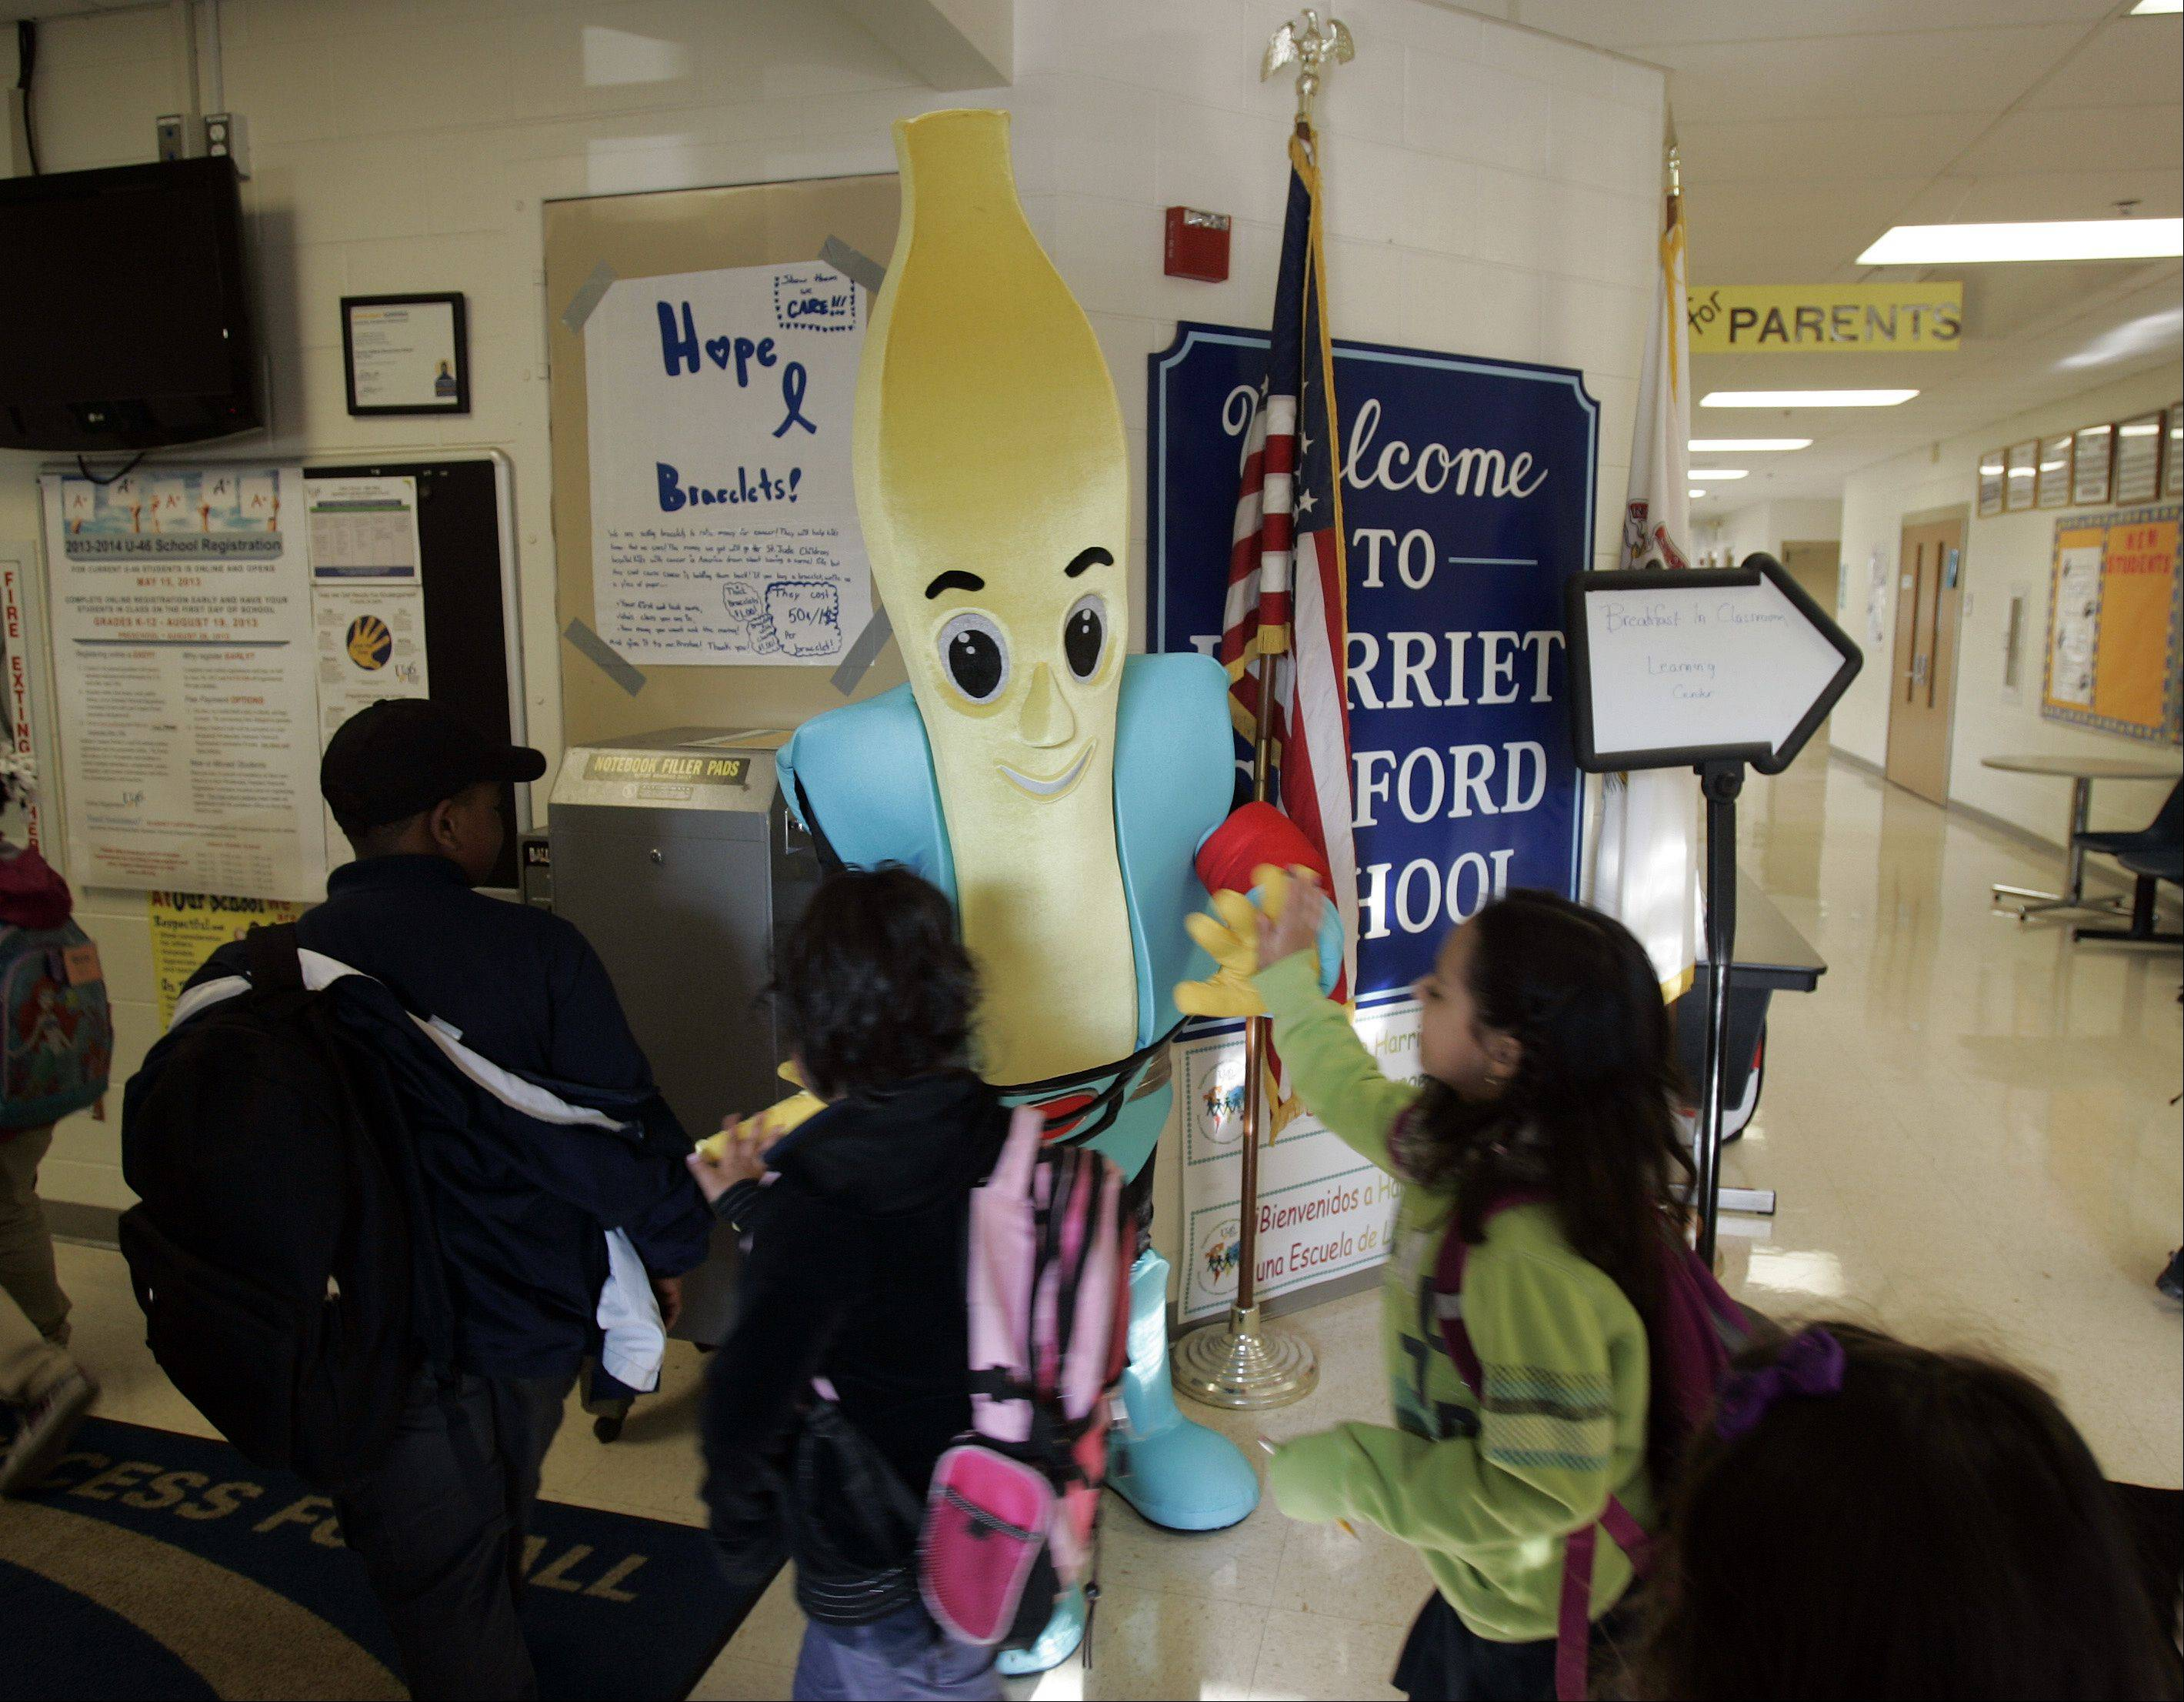 Captain Nutrition greets students Thursday at Harriet Gifford Elementary School in Elgin as they head to the classroom to enjoy breakfast as part of the Breakfast in the Classroom program that is available at 10 U-46 schools this year.